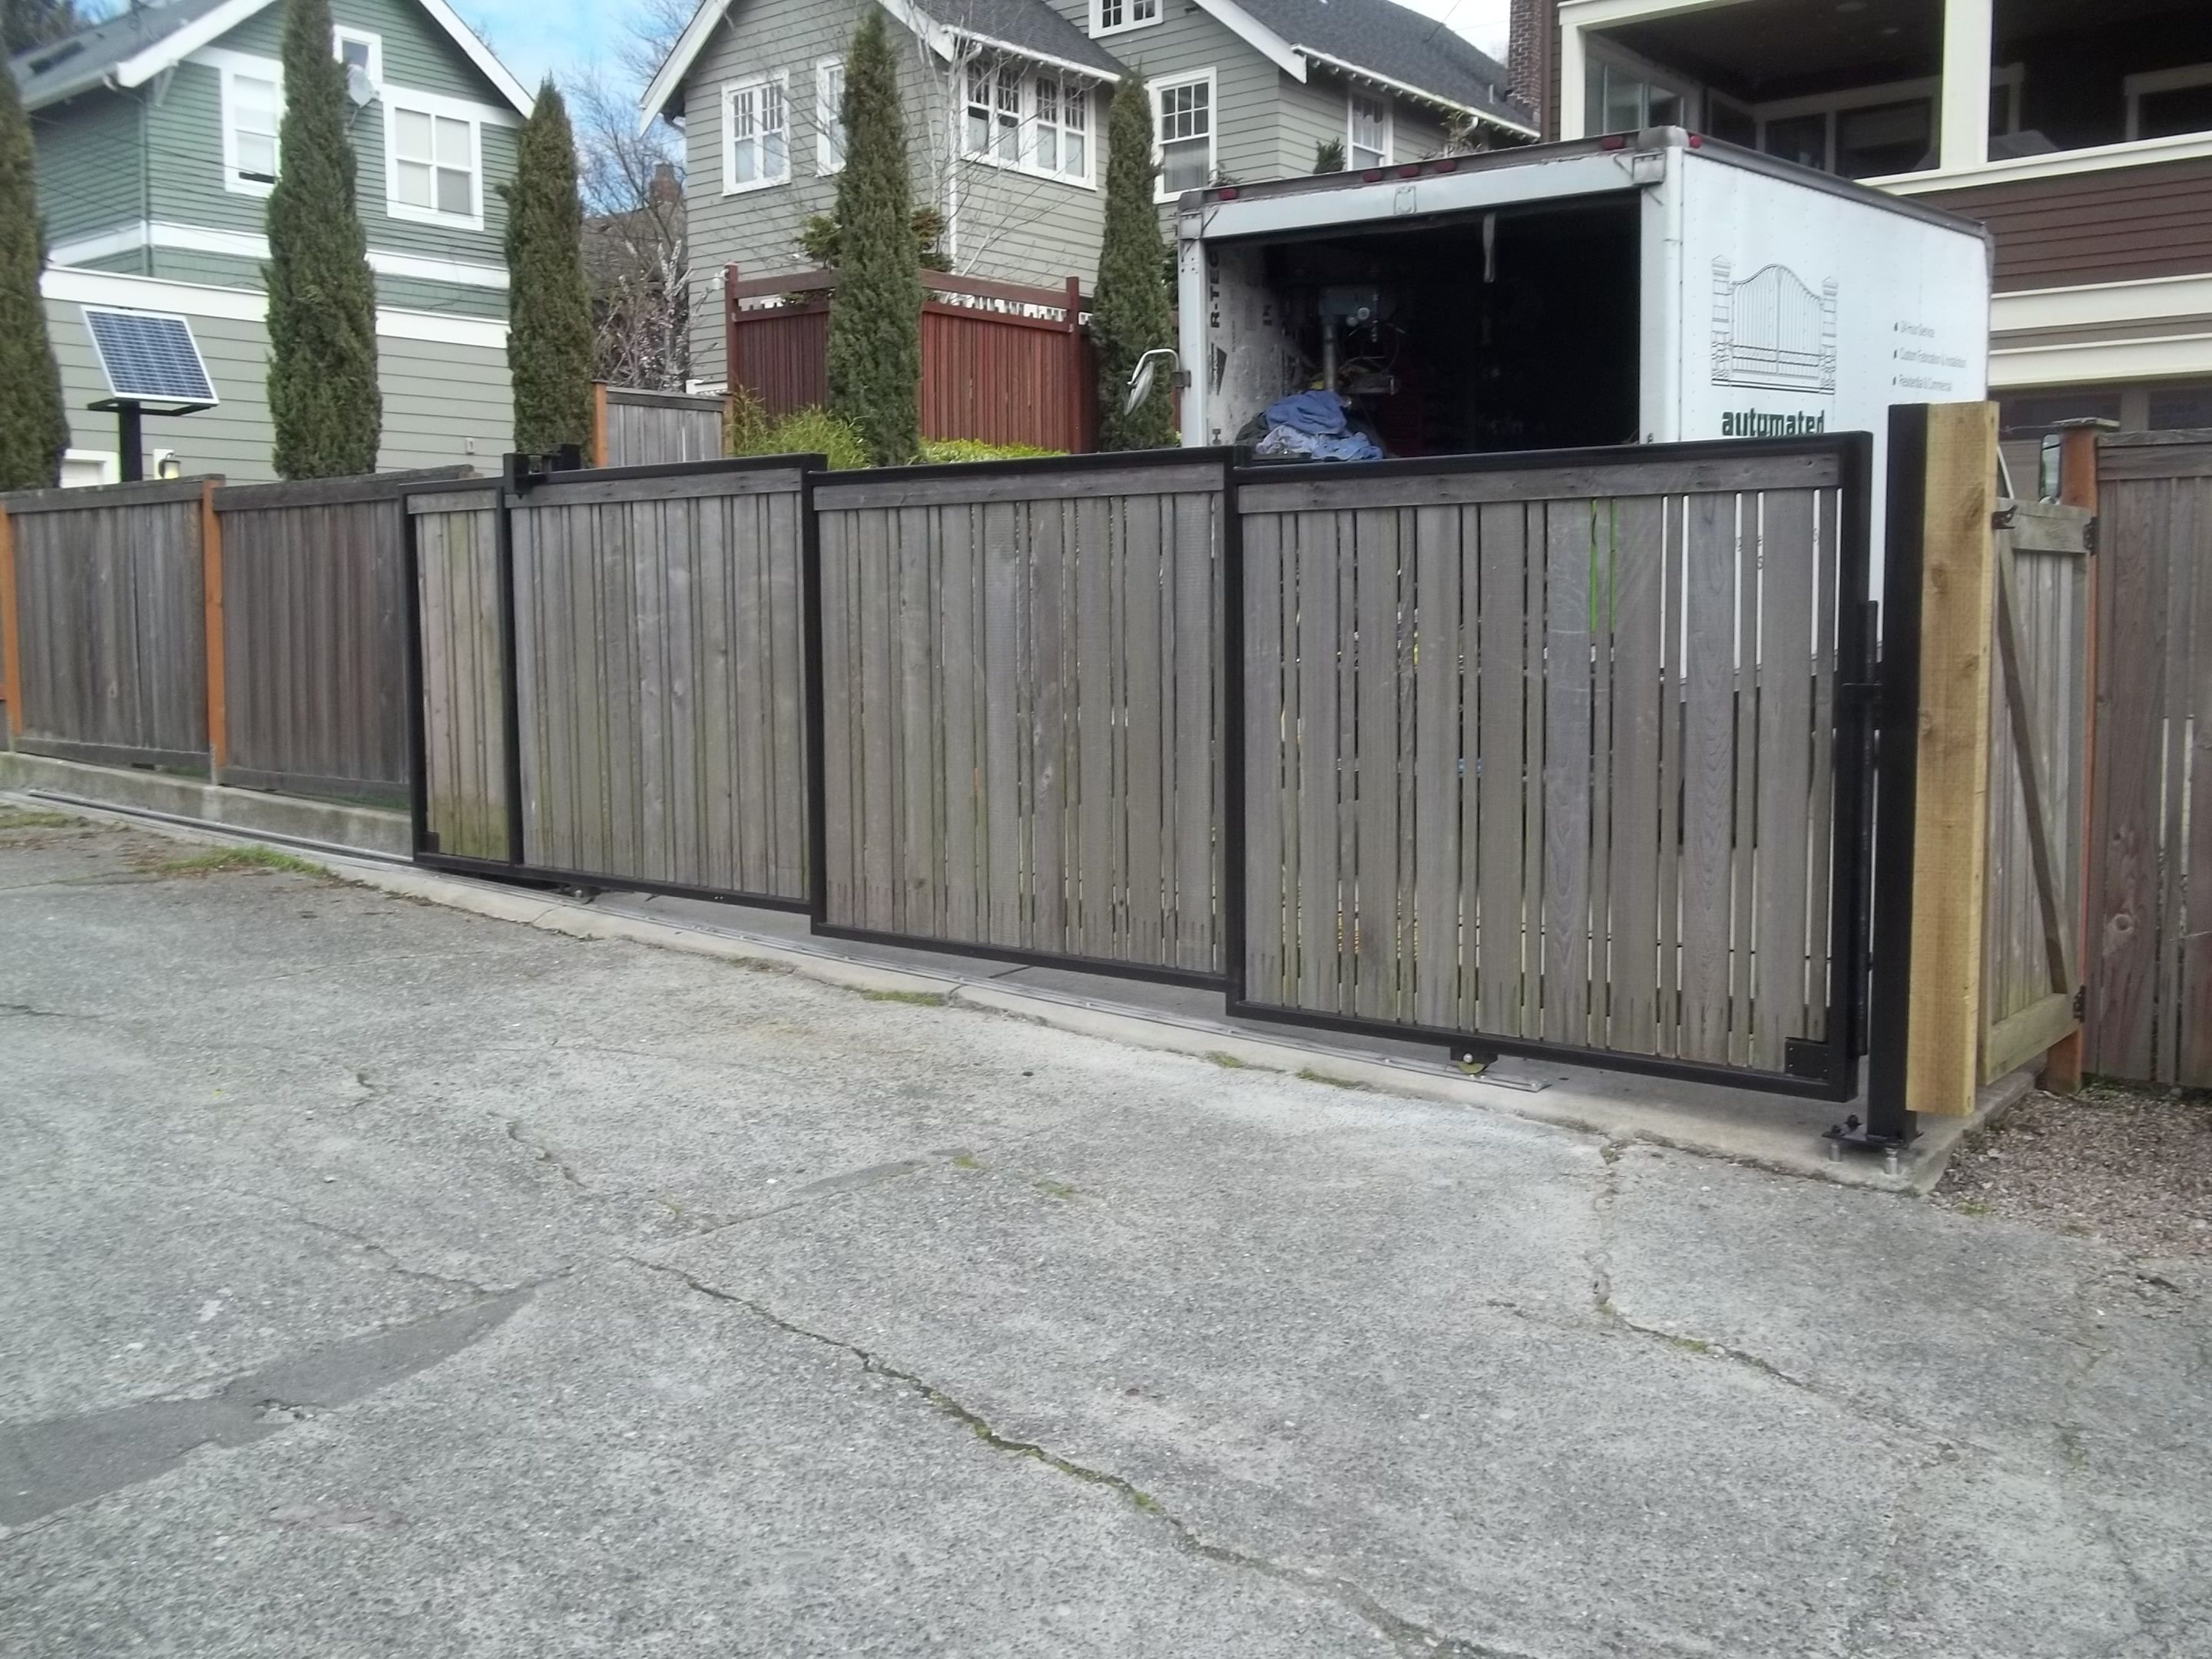 Tandem slide gate reusing the customer's existing wood fence panels.  #custom #entrance #gate #vehicle #wood #driveway #security #gate #upcycle #electric #automatic